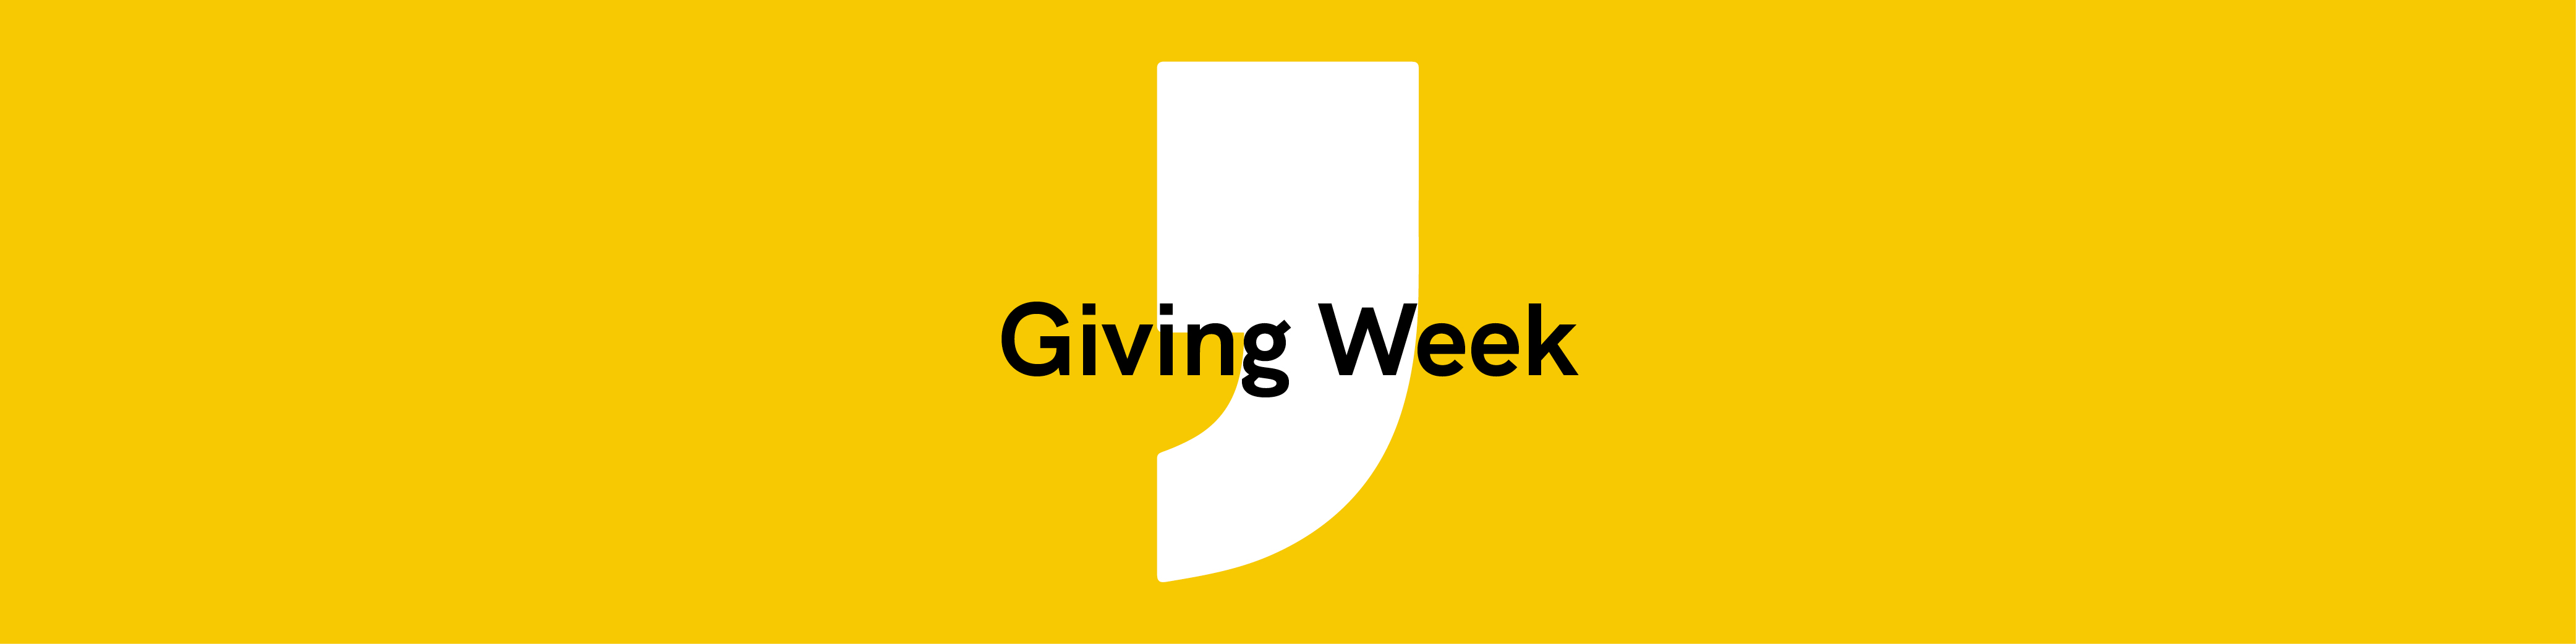 Giving Week